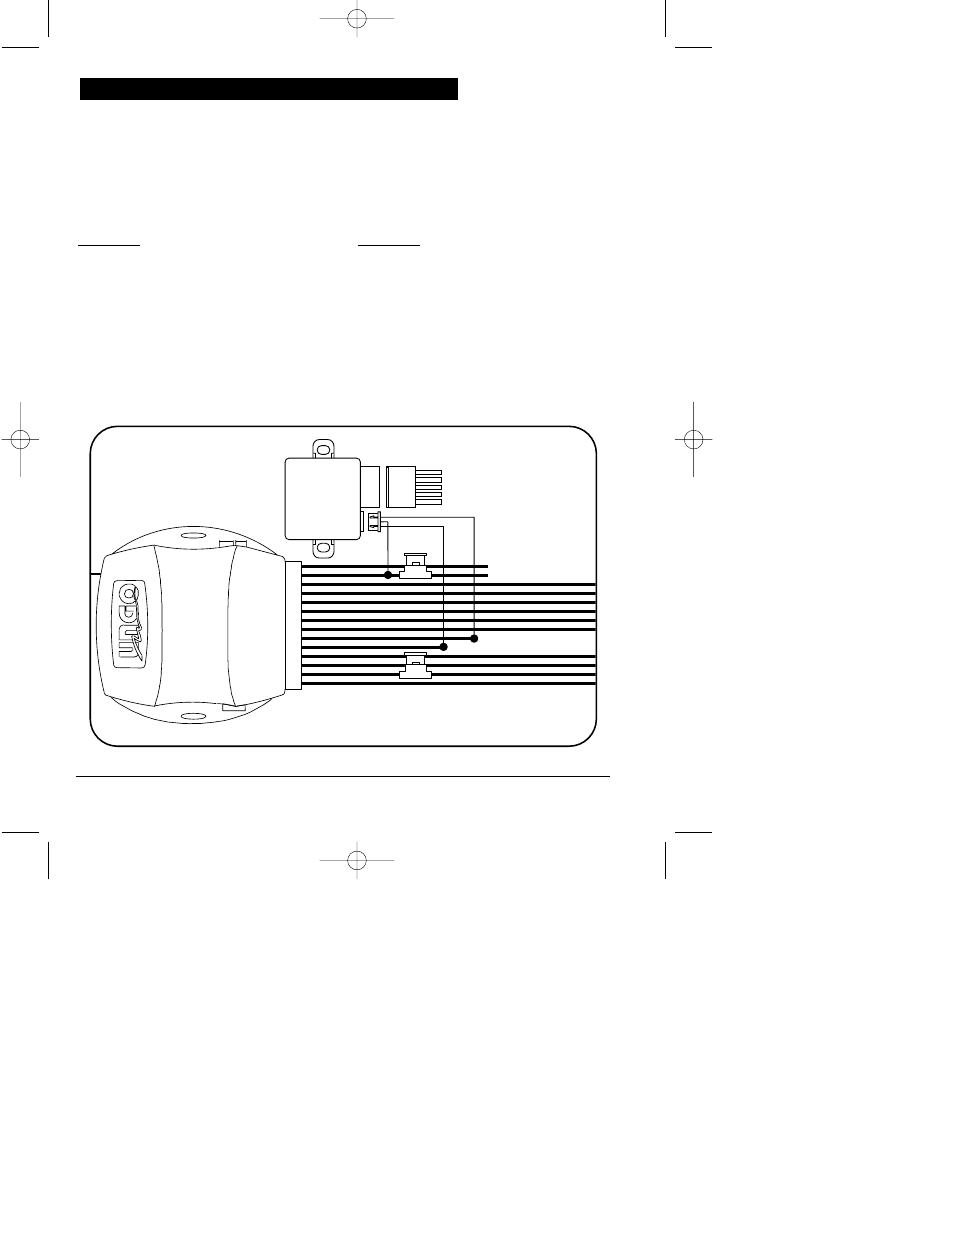 hight resolution of optional dlrm door lock relay module clarion ungo ms3001 user manual page 22 26